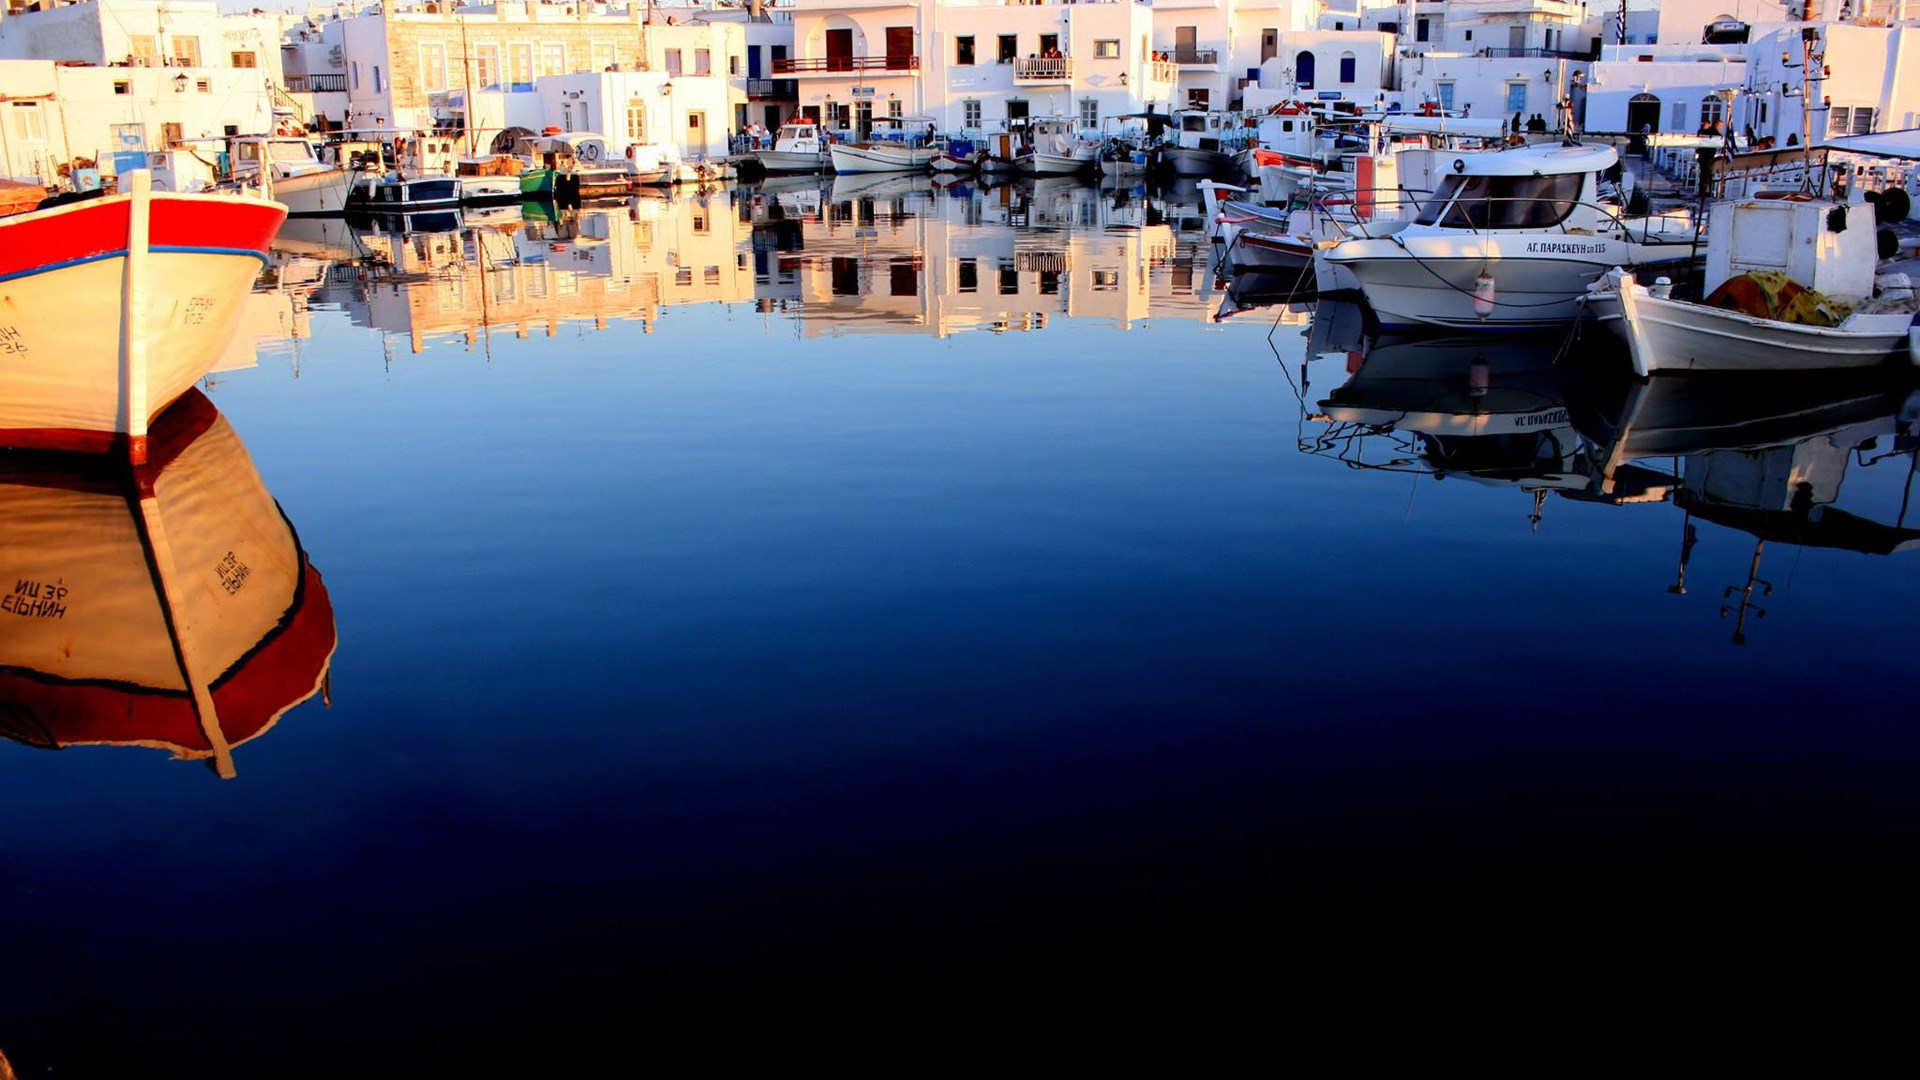 Naoussa, Paros - Cyclades Islands | 21 Aug 2014  | Alargo